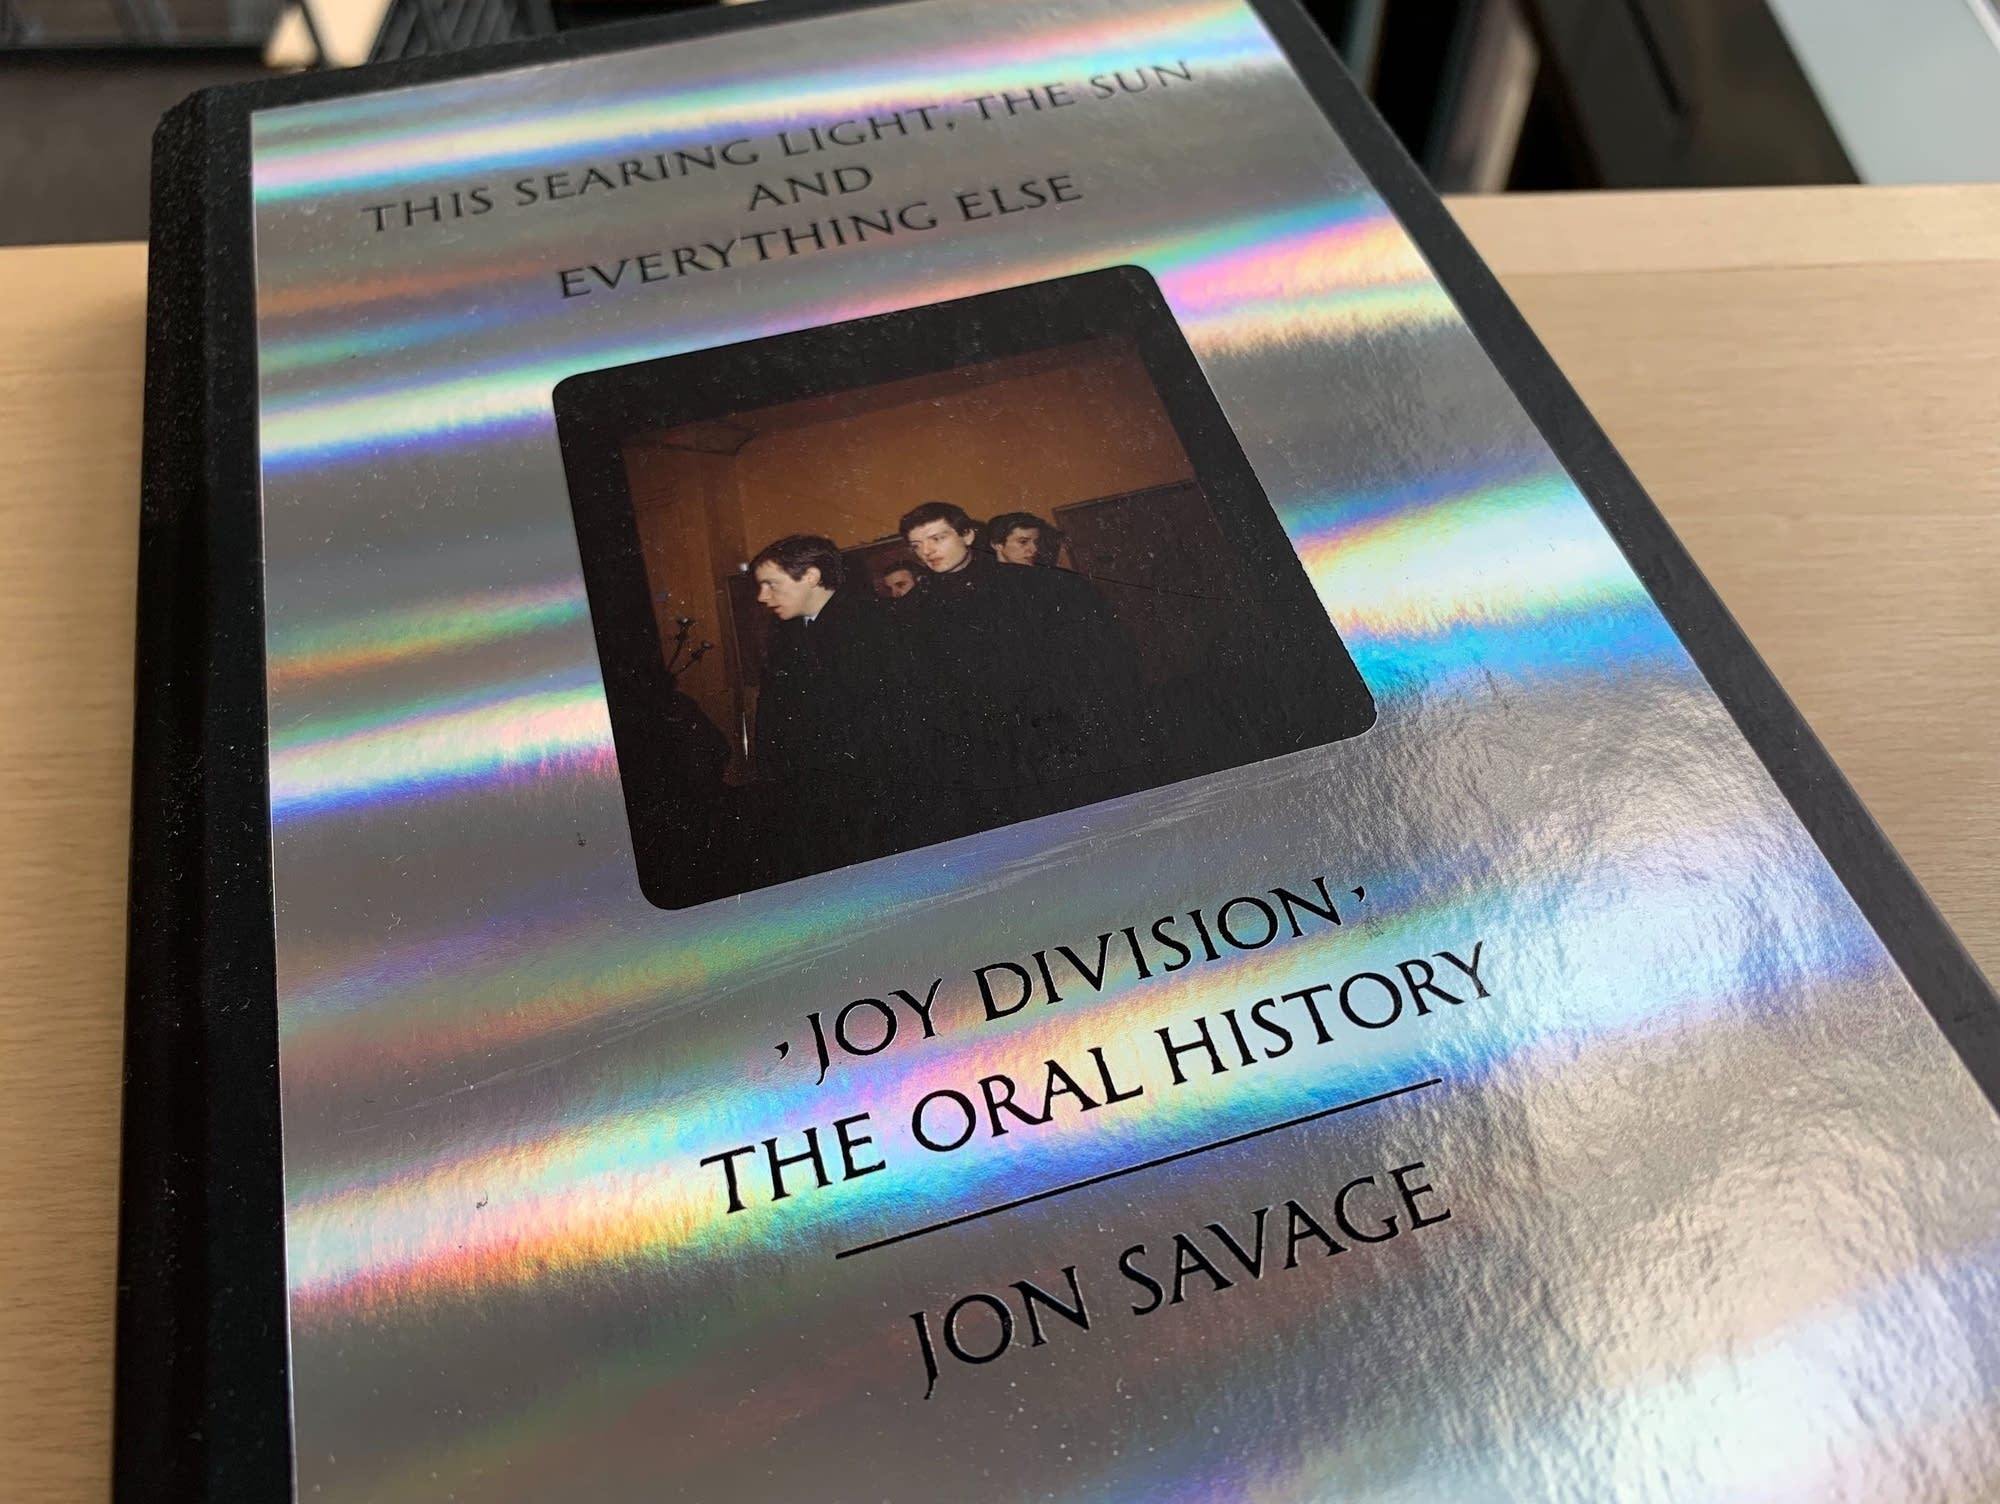 Jon Savage's 'This Searing Light, the Sun and Everything Else.'